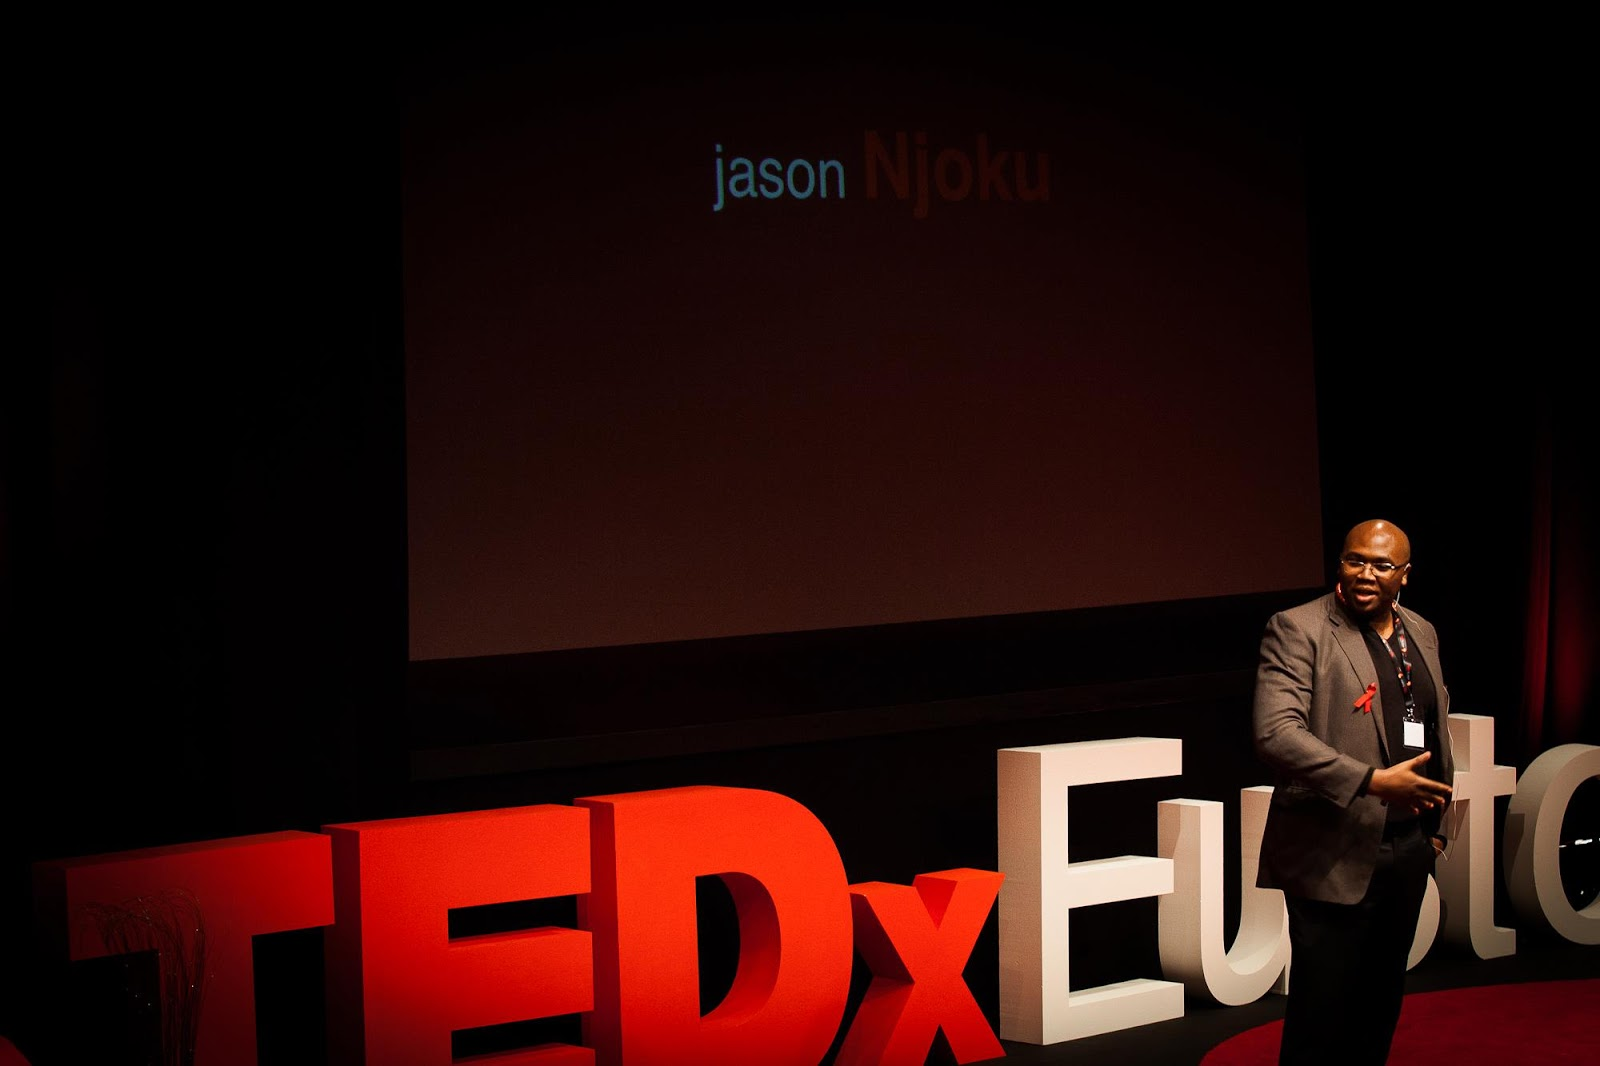 Inspiration Tuesday! Failing all the way to success Jason Njoku on TedxEuston